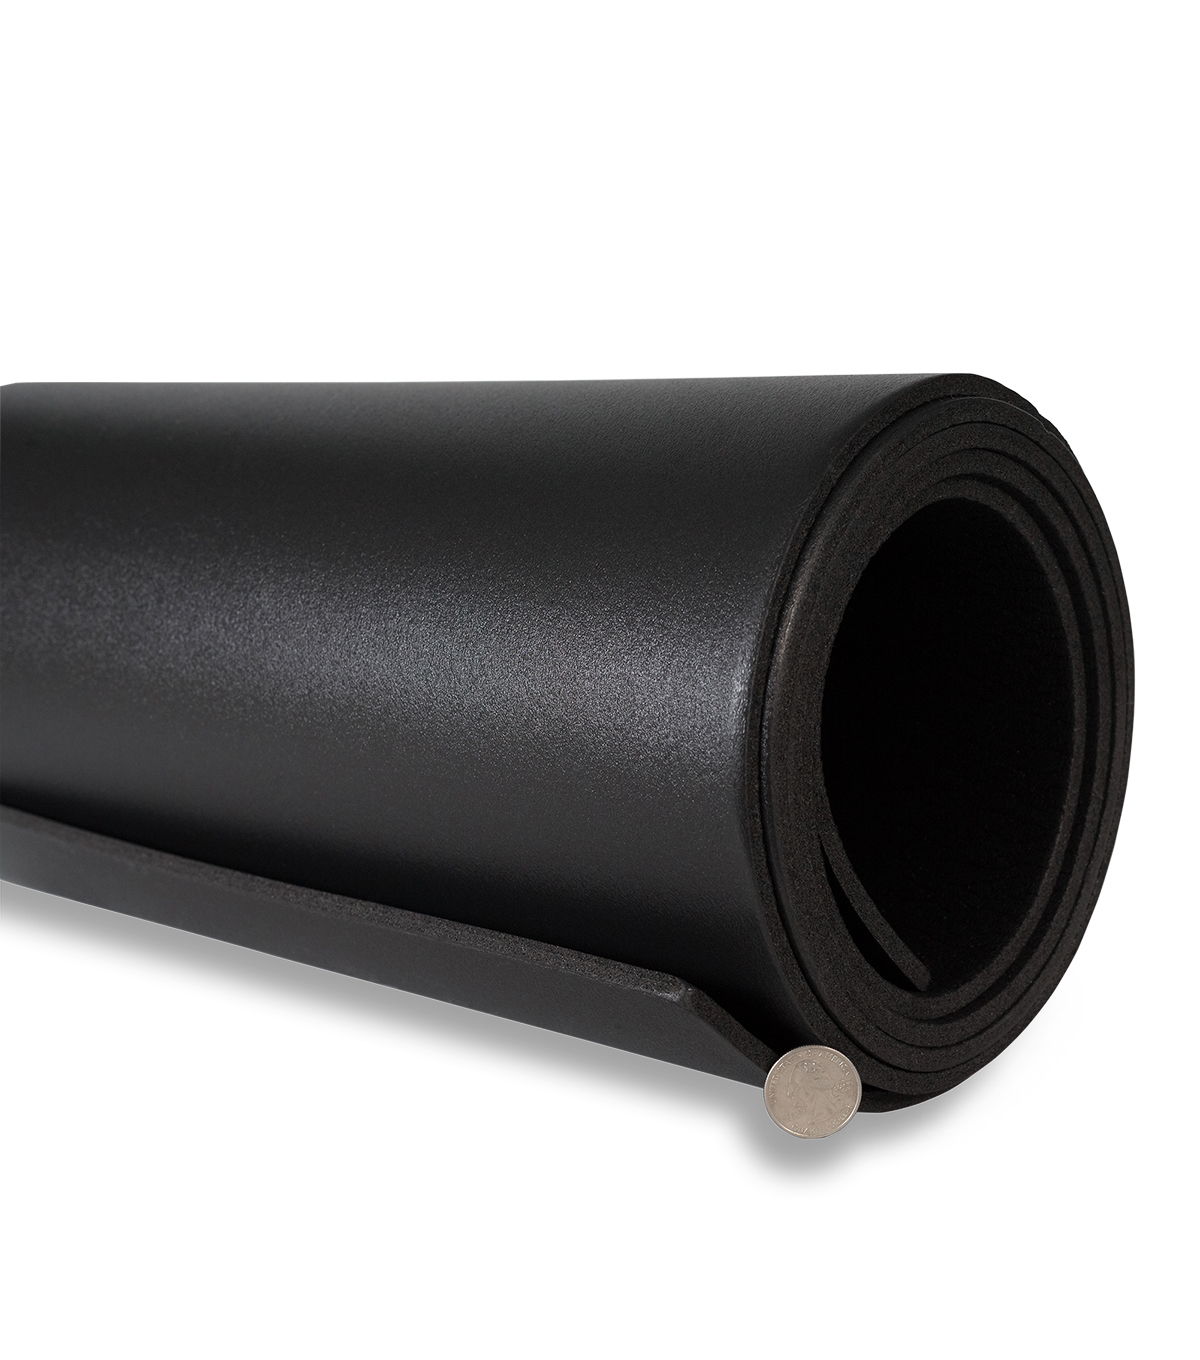 Household Firm Foam 72x24 Roll